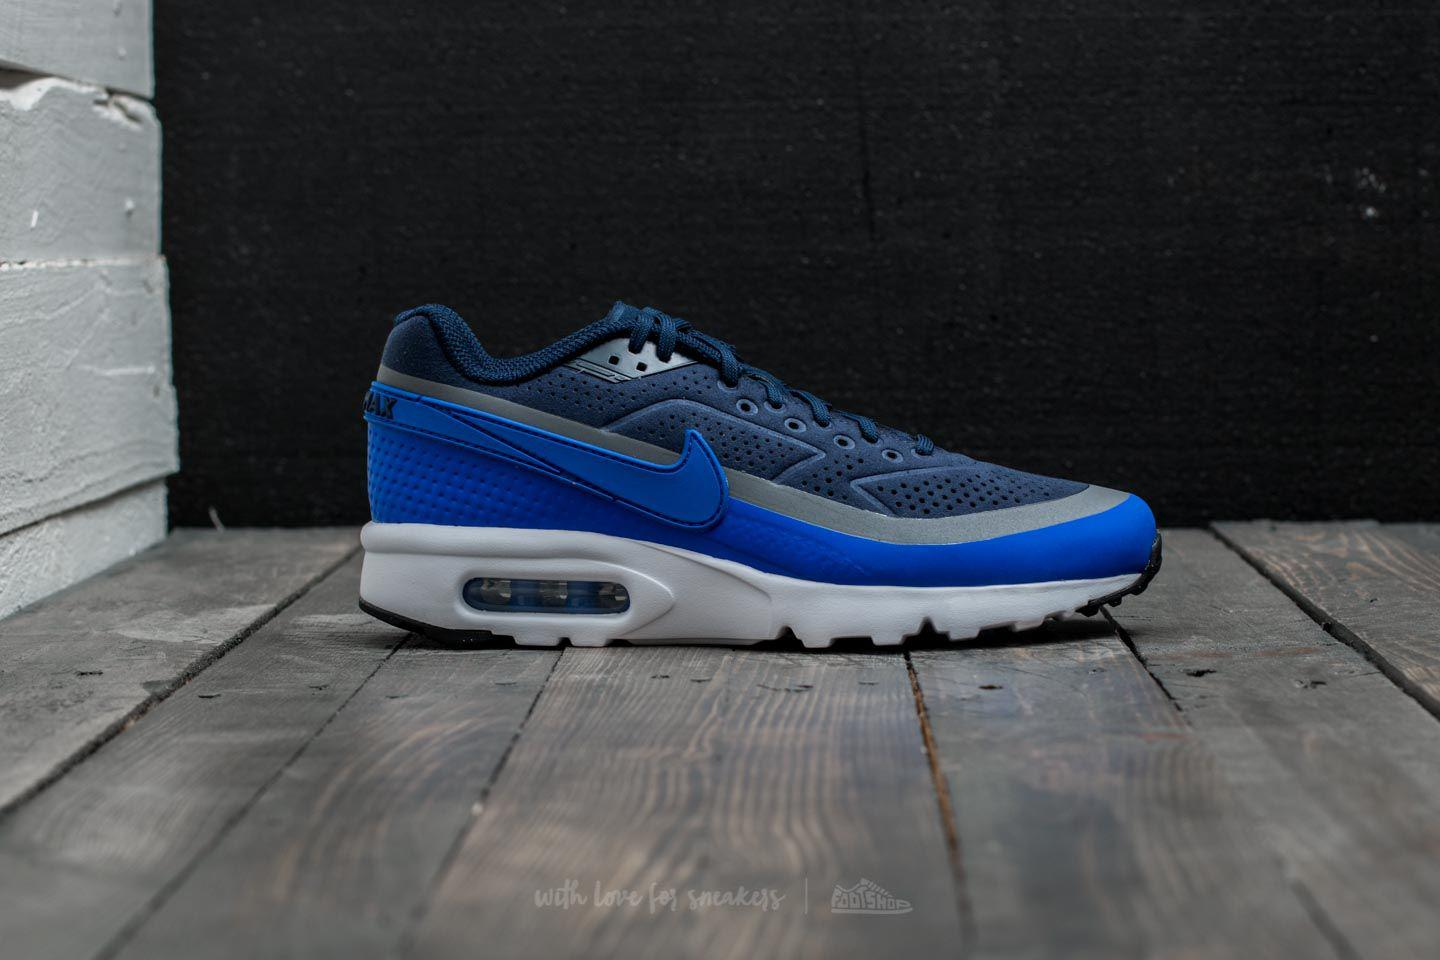 709f82992c Nike Air Max Bw Ultra Moire Midnight Navy/ Racer Blue in Blue for ...